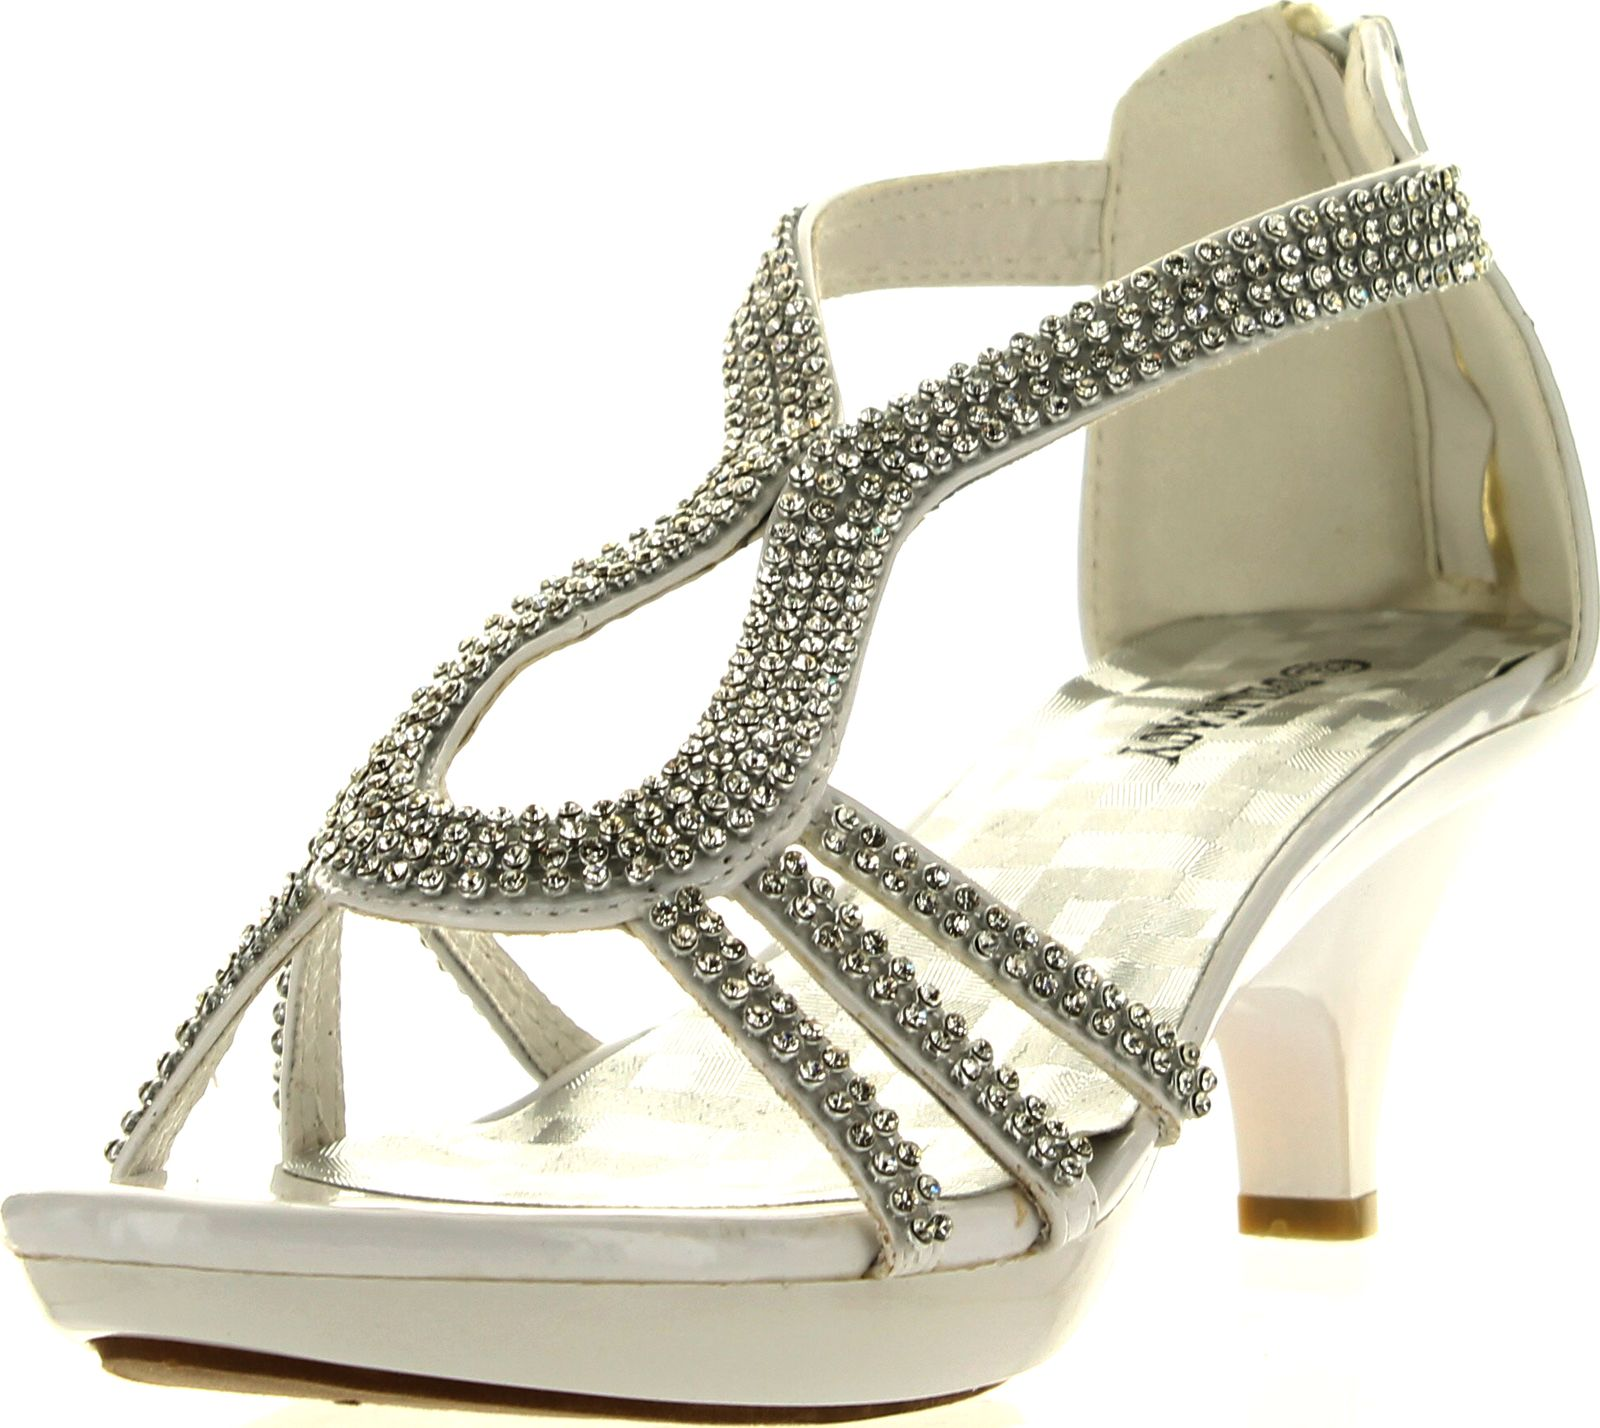 Delicacy Women Dress Sandals Rhinestone Platform Wedding